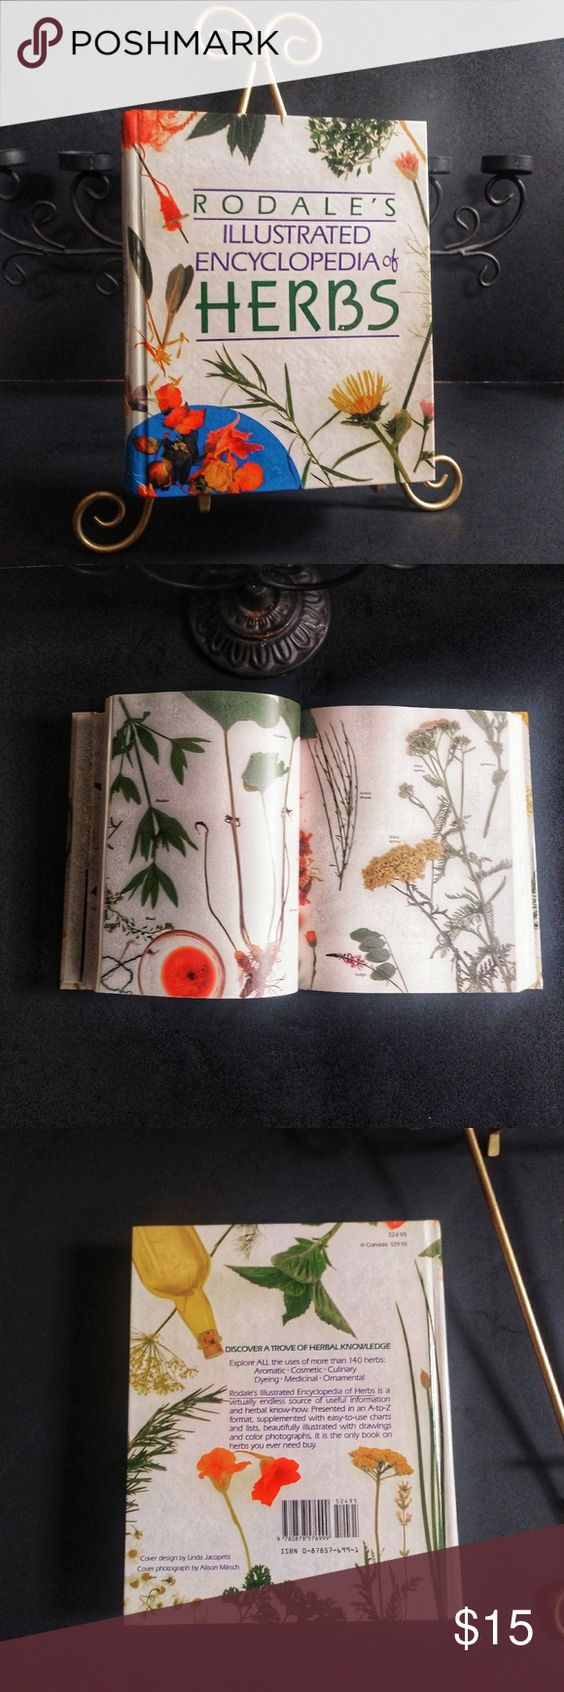 Rodale S Encyclopedia Of Herb S Vintage Book Rodale S Encyclopedia Of Herb S This Is A Vintage Colorful Book Vintage Book How To Introduce Yourself Vintage